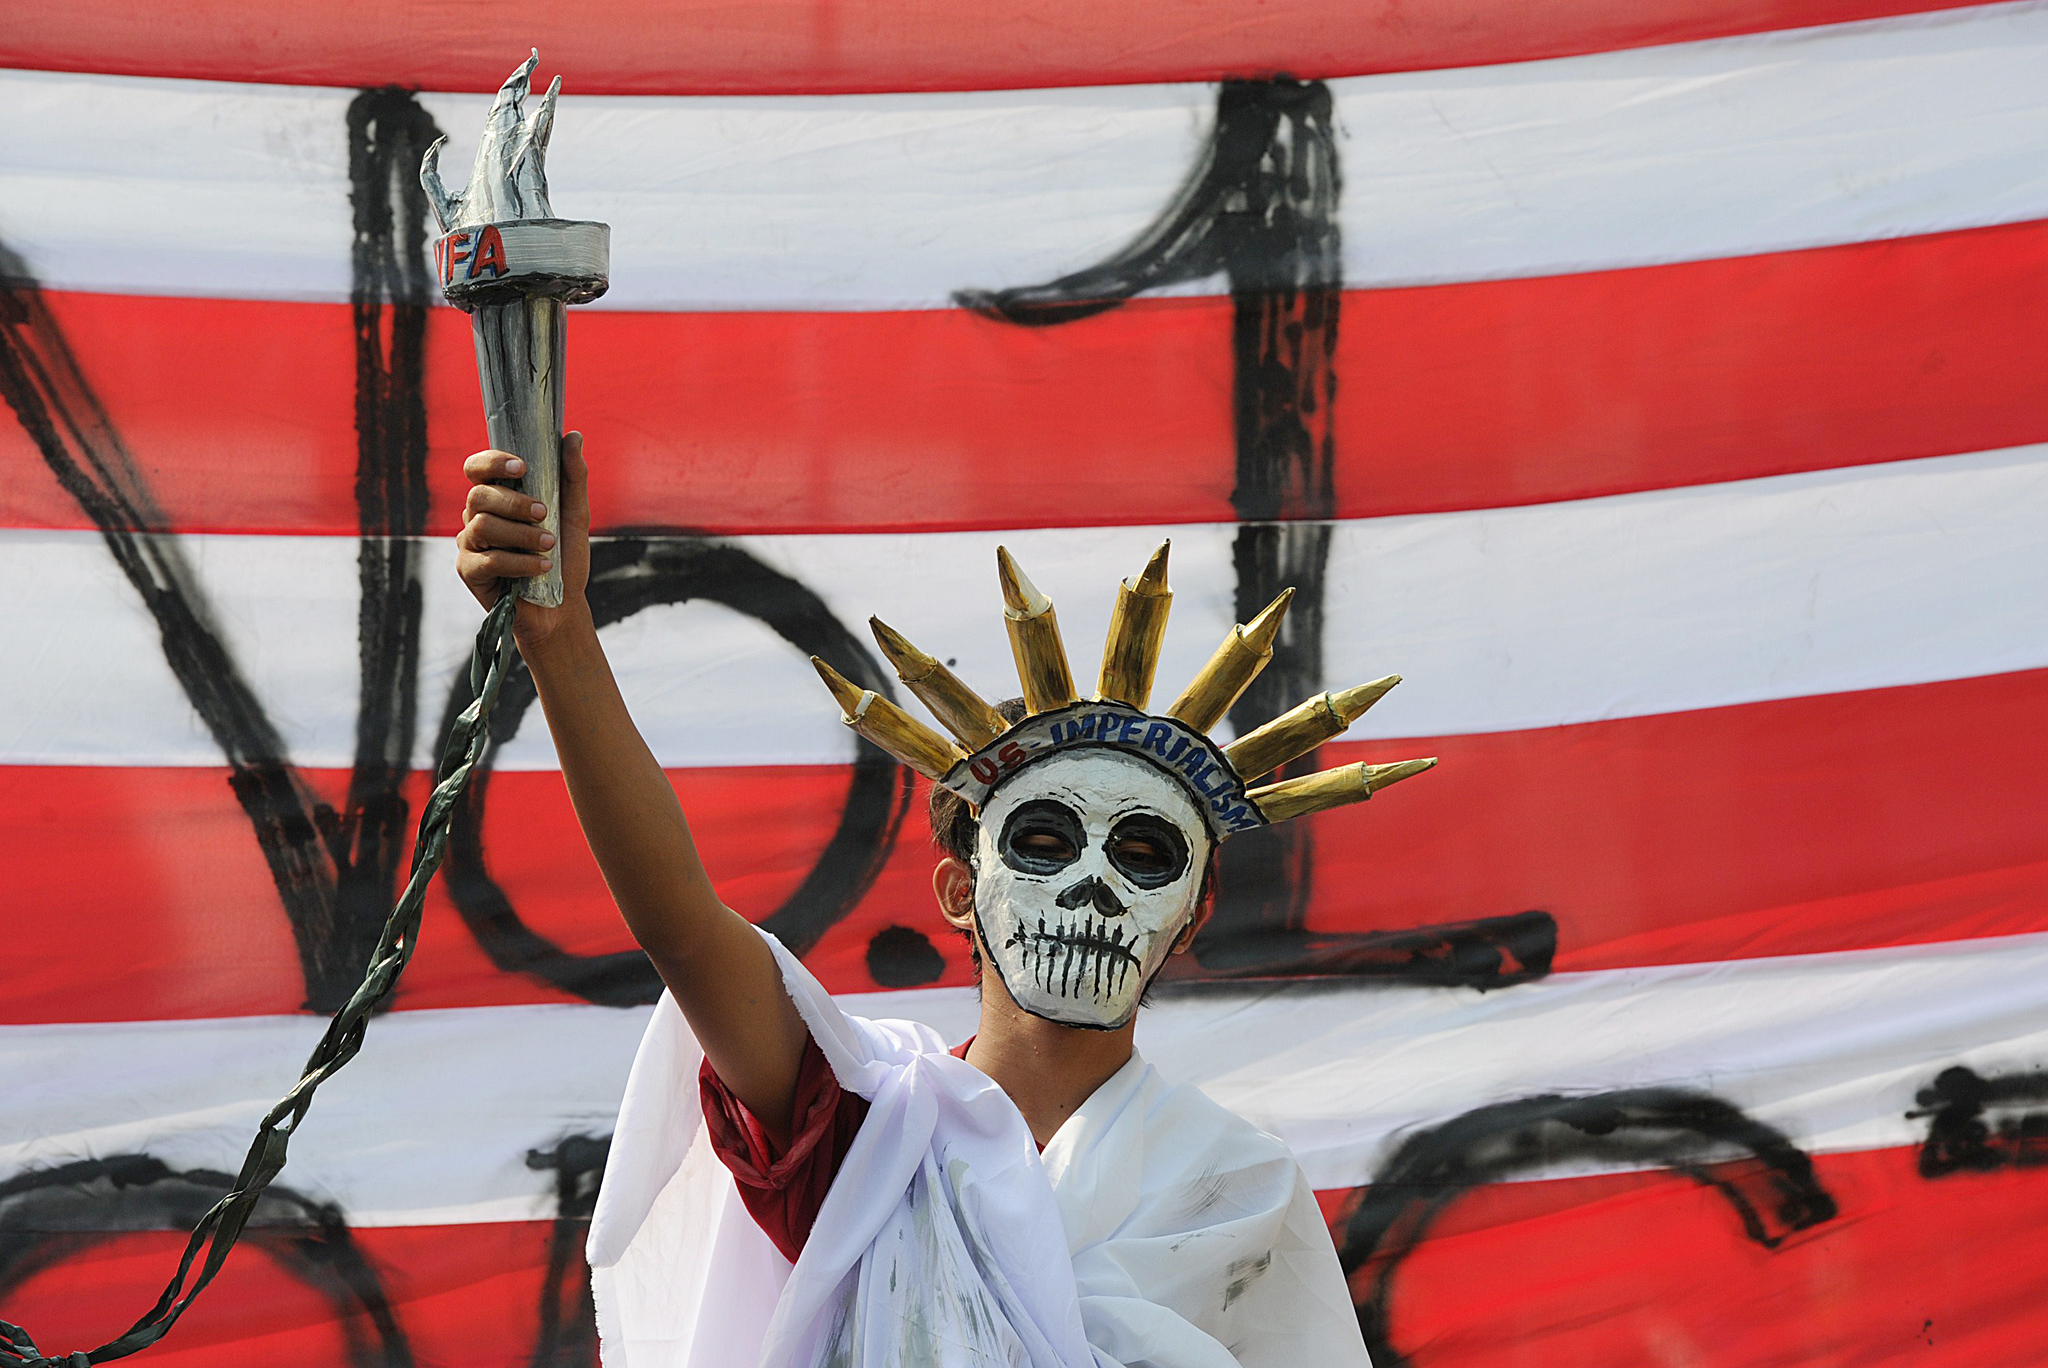 "An anti-US protester dressed like the St...An anti-US protester dressed like the Statue of Liberty stands next to a giant mock US flag during a protest near the Malacanang palace in Manila on April 29, 2014, as US President Barack Obama's visit to the capital winds down. The protesters were protesting against the newly-signed defense agreement between the US and the Philippines, with President Obama ending an Asian tour April 29 with a warning to China against using force to resolve territorial disputes, and an ""ironclad"" promise of military support for the Philippines.     AFP PHOTO/TED ALJIBETED ALJIBE/AFP/Getty Images"